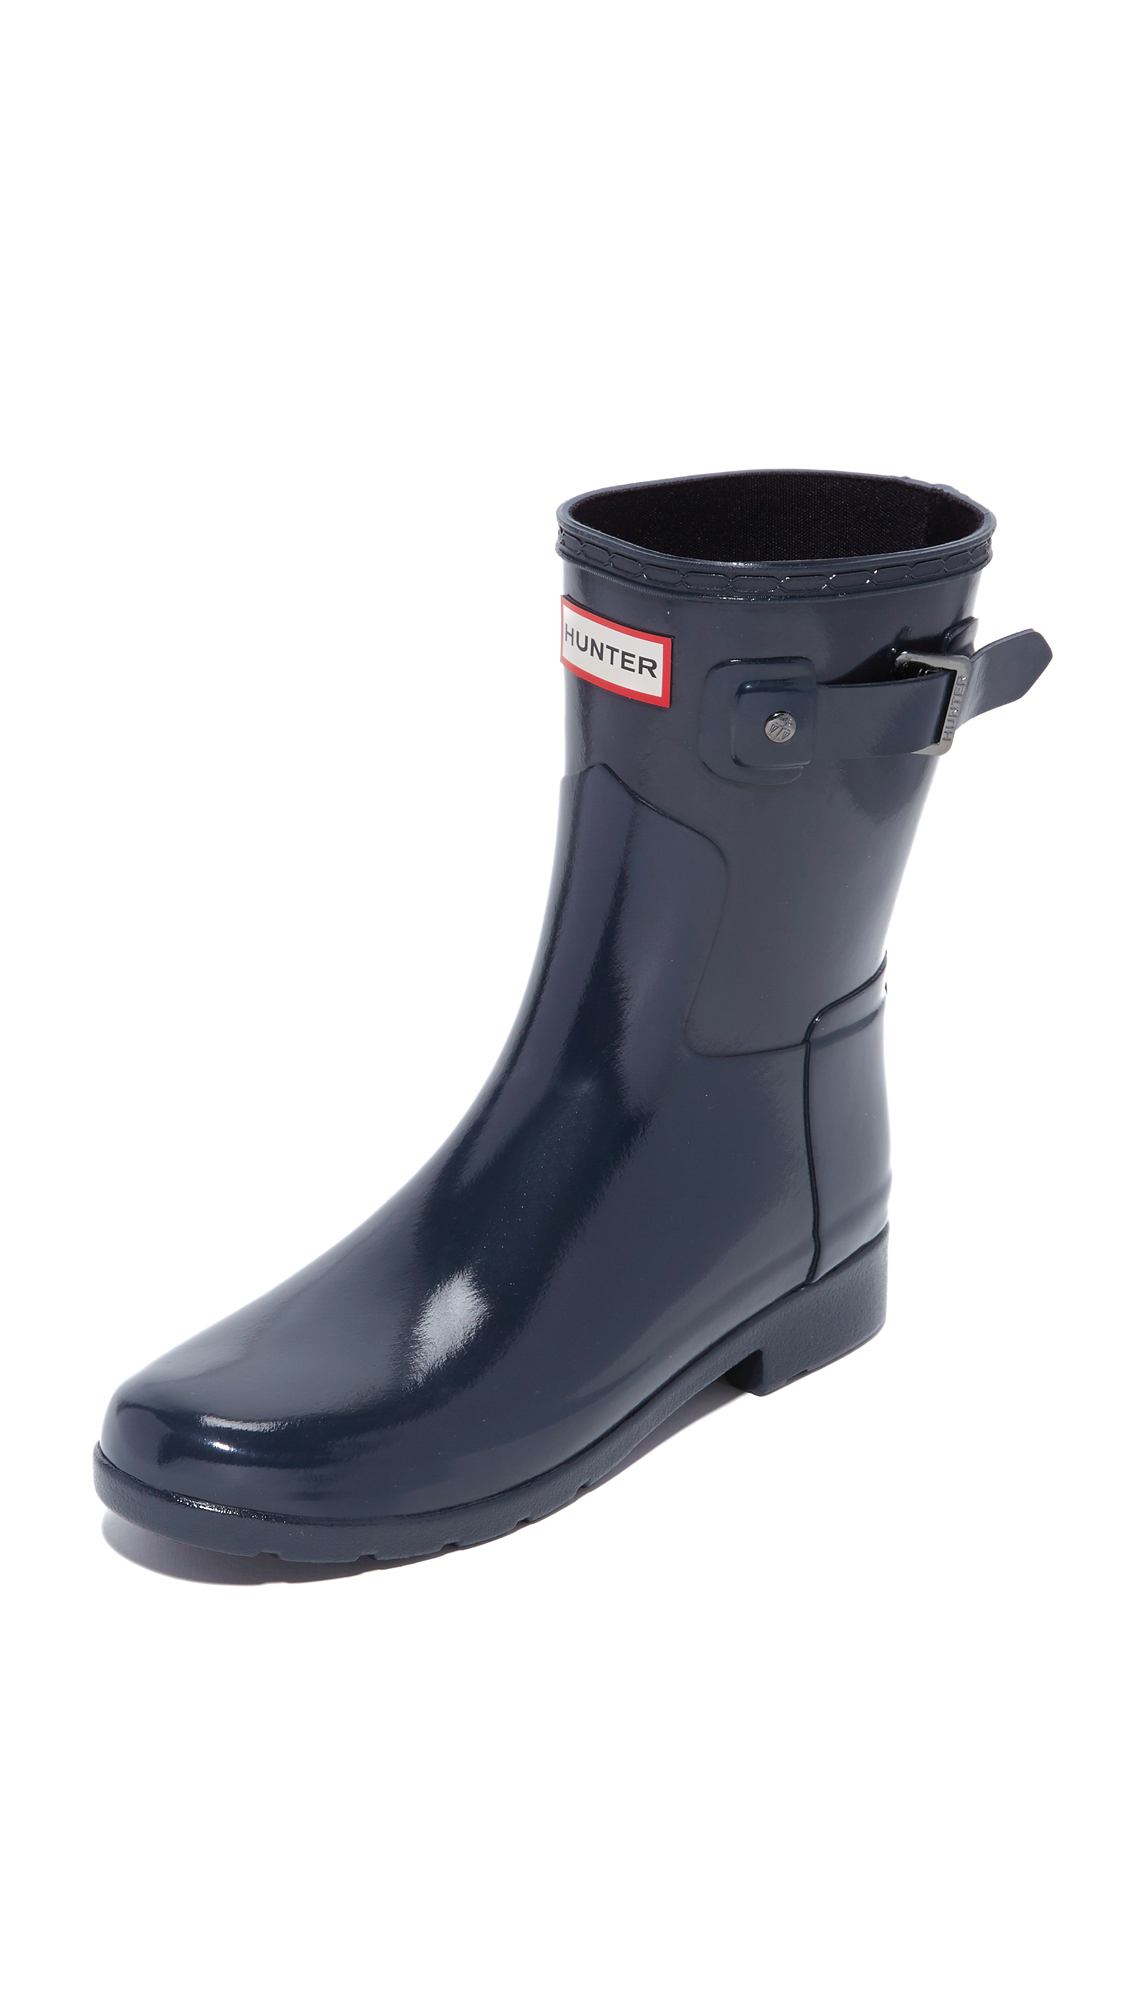 Hunter Boots Original Refined Gloss Short Boots - Navy at Shopbop